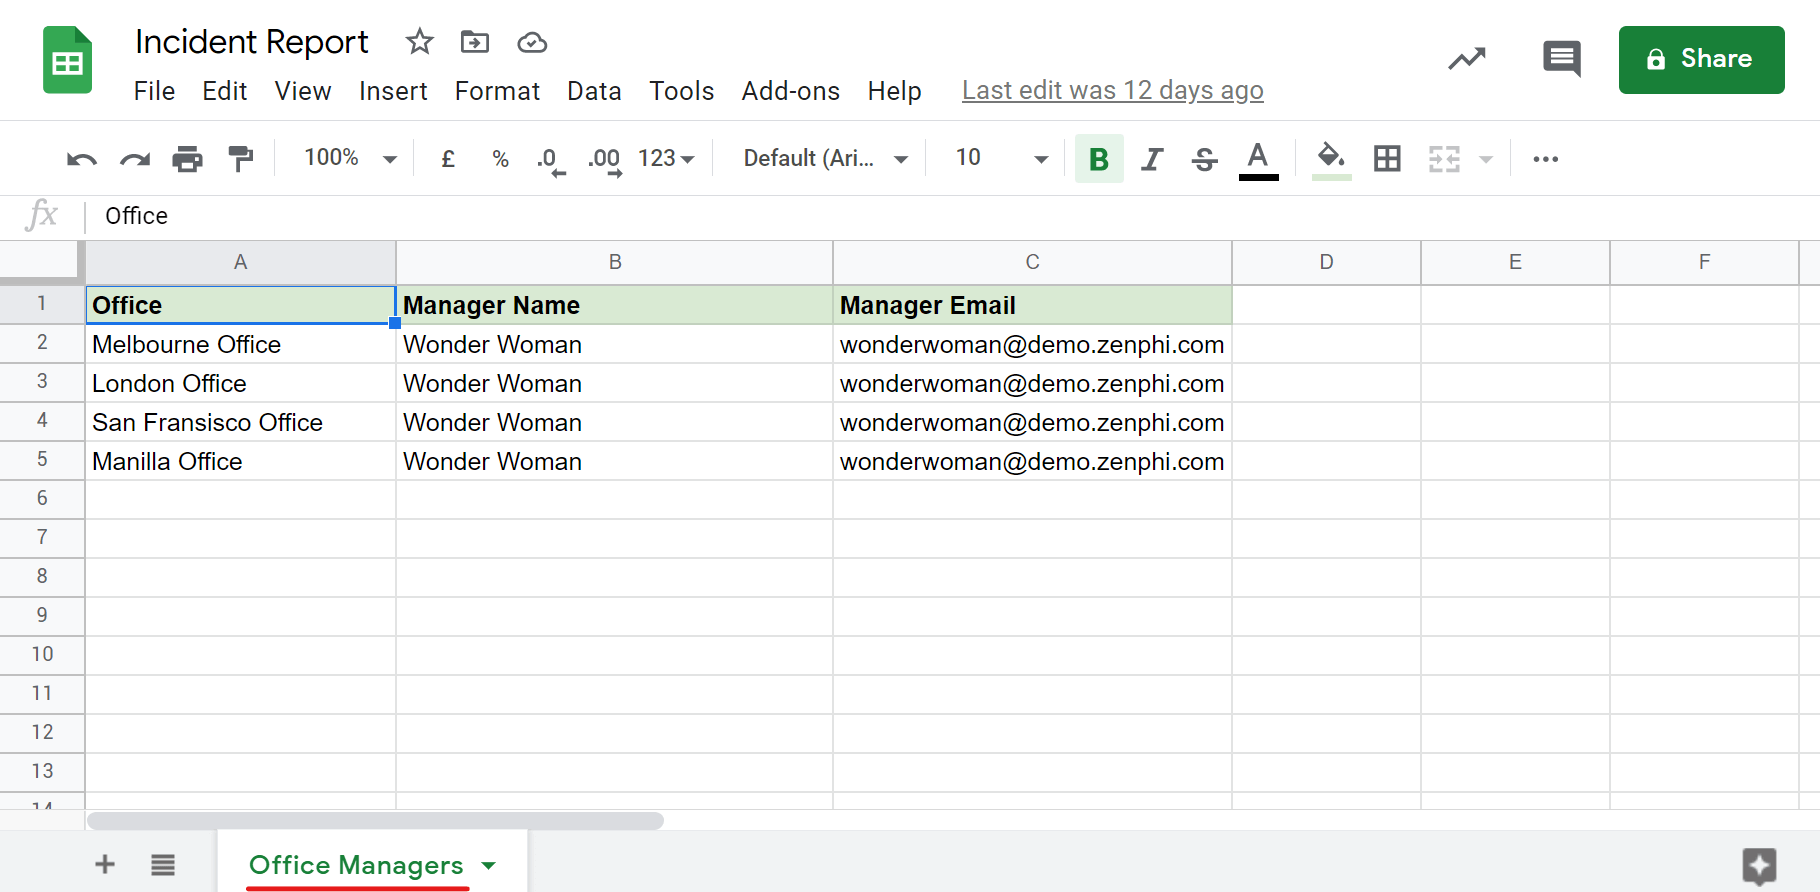 List of the Location Managers and their information.